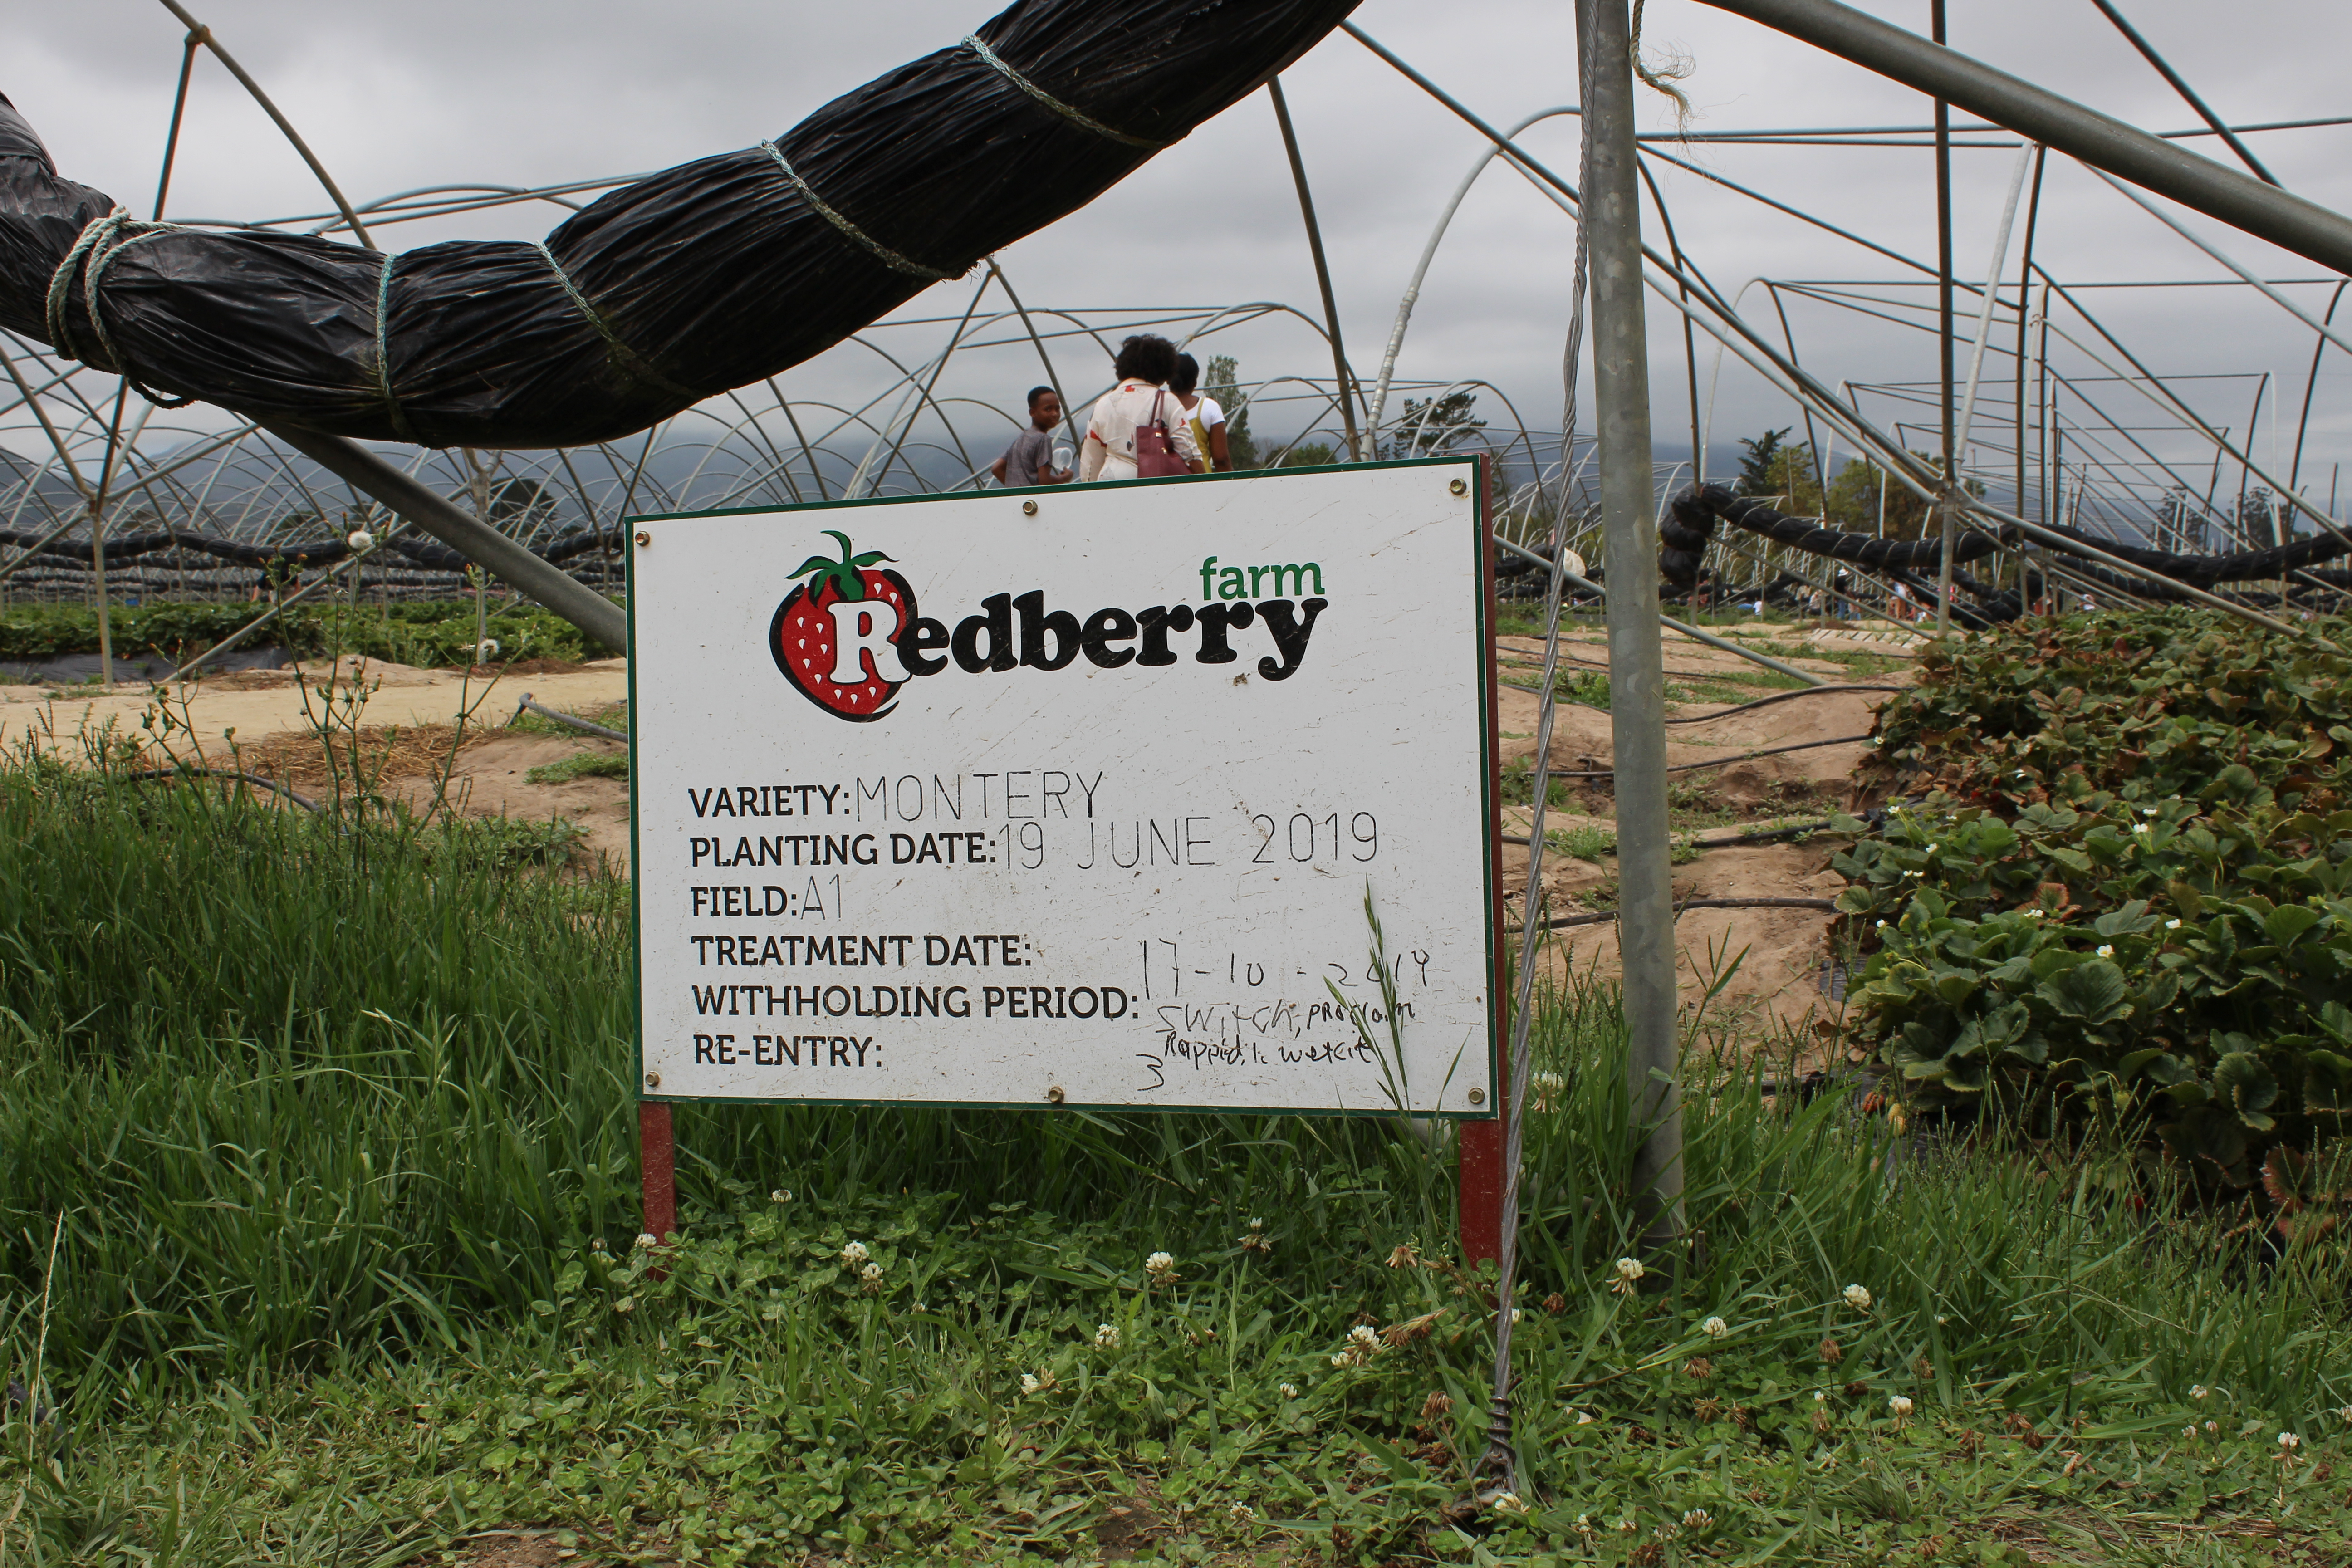 redberry farm in george western cape in south africa